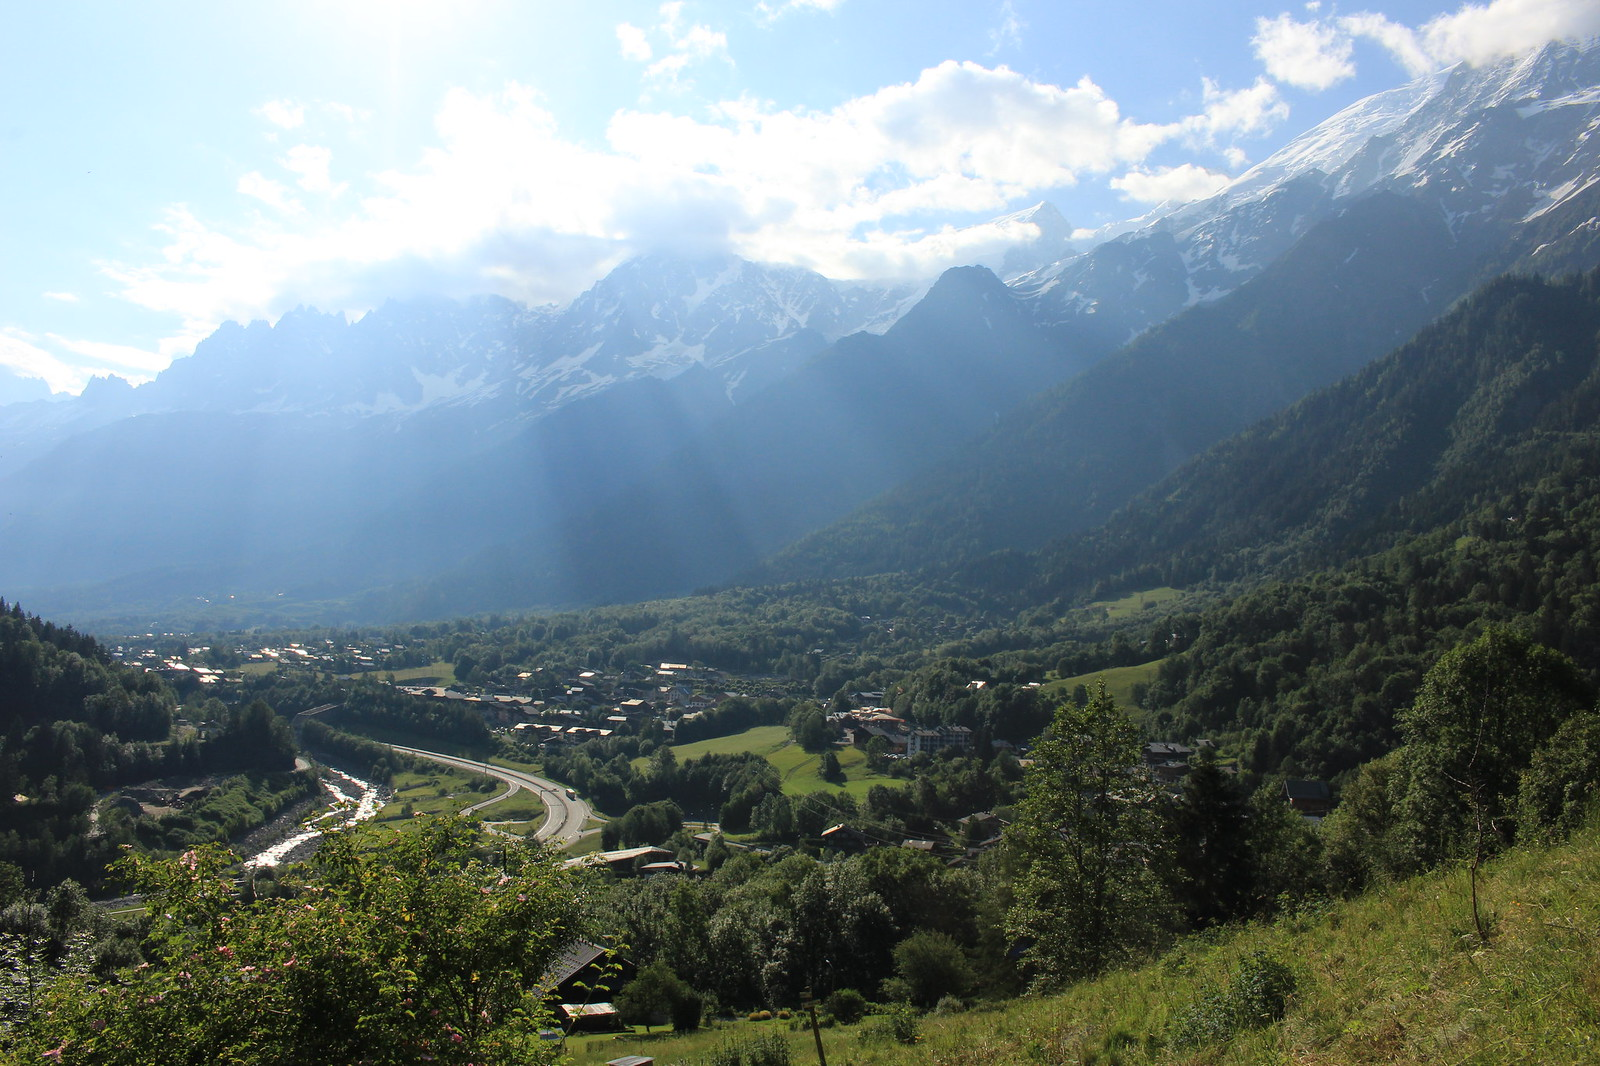 Overview of Les Houches